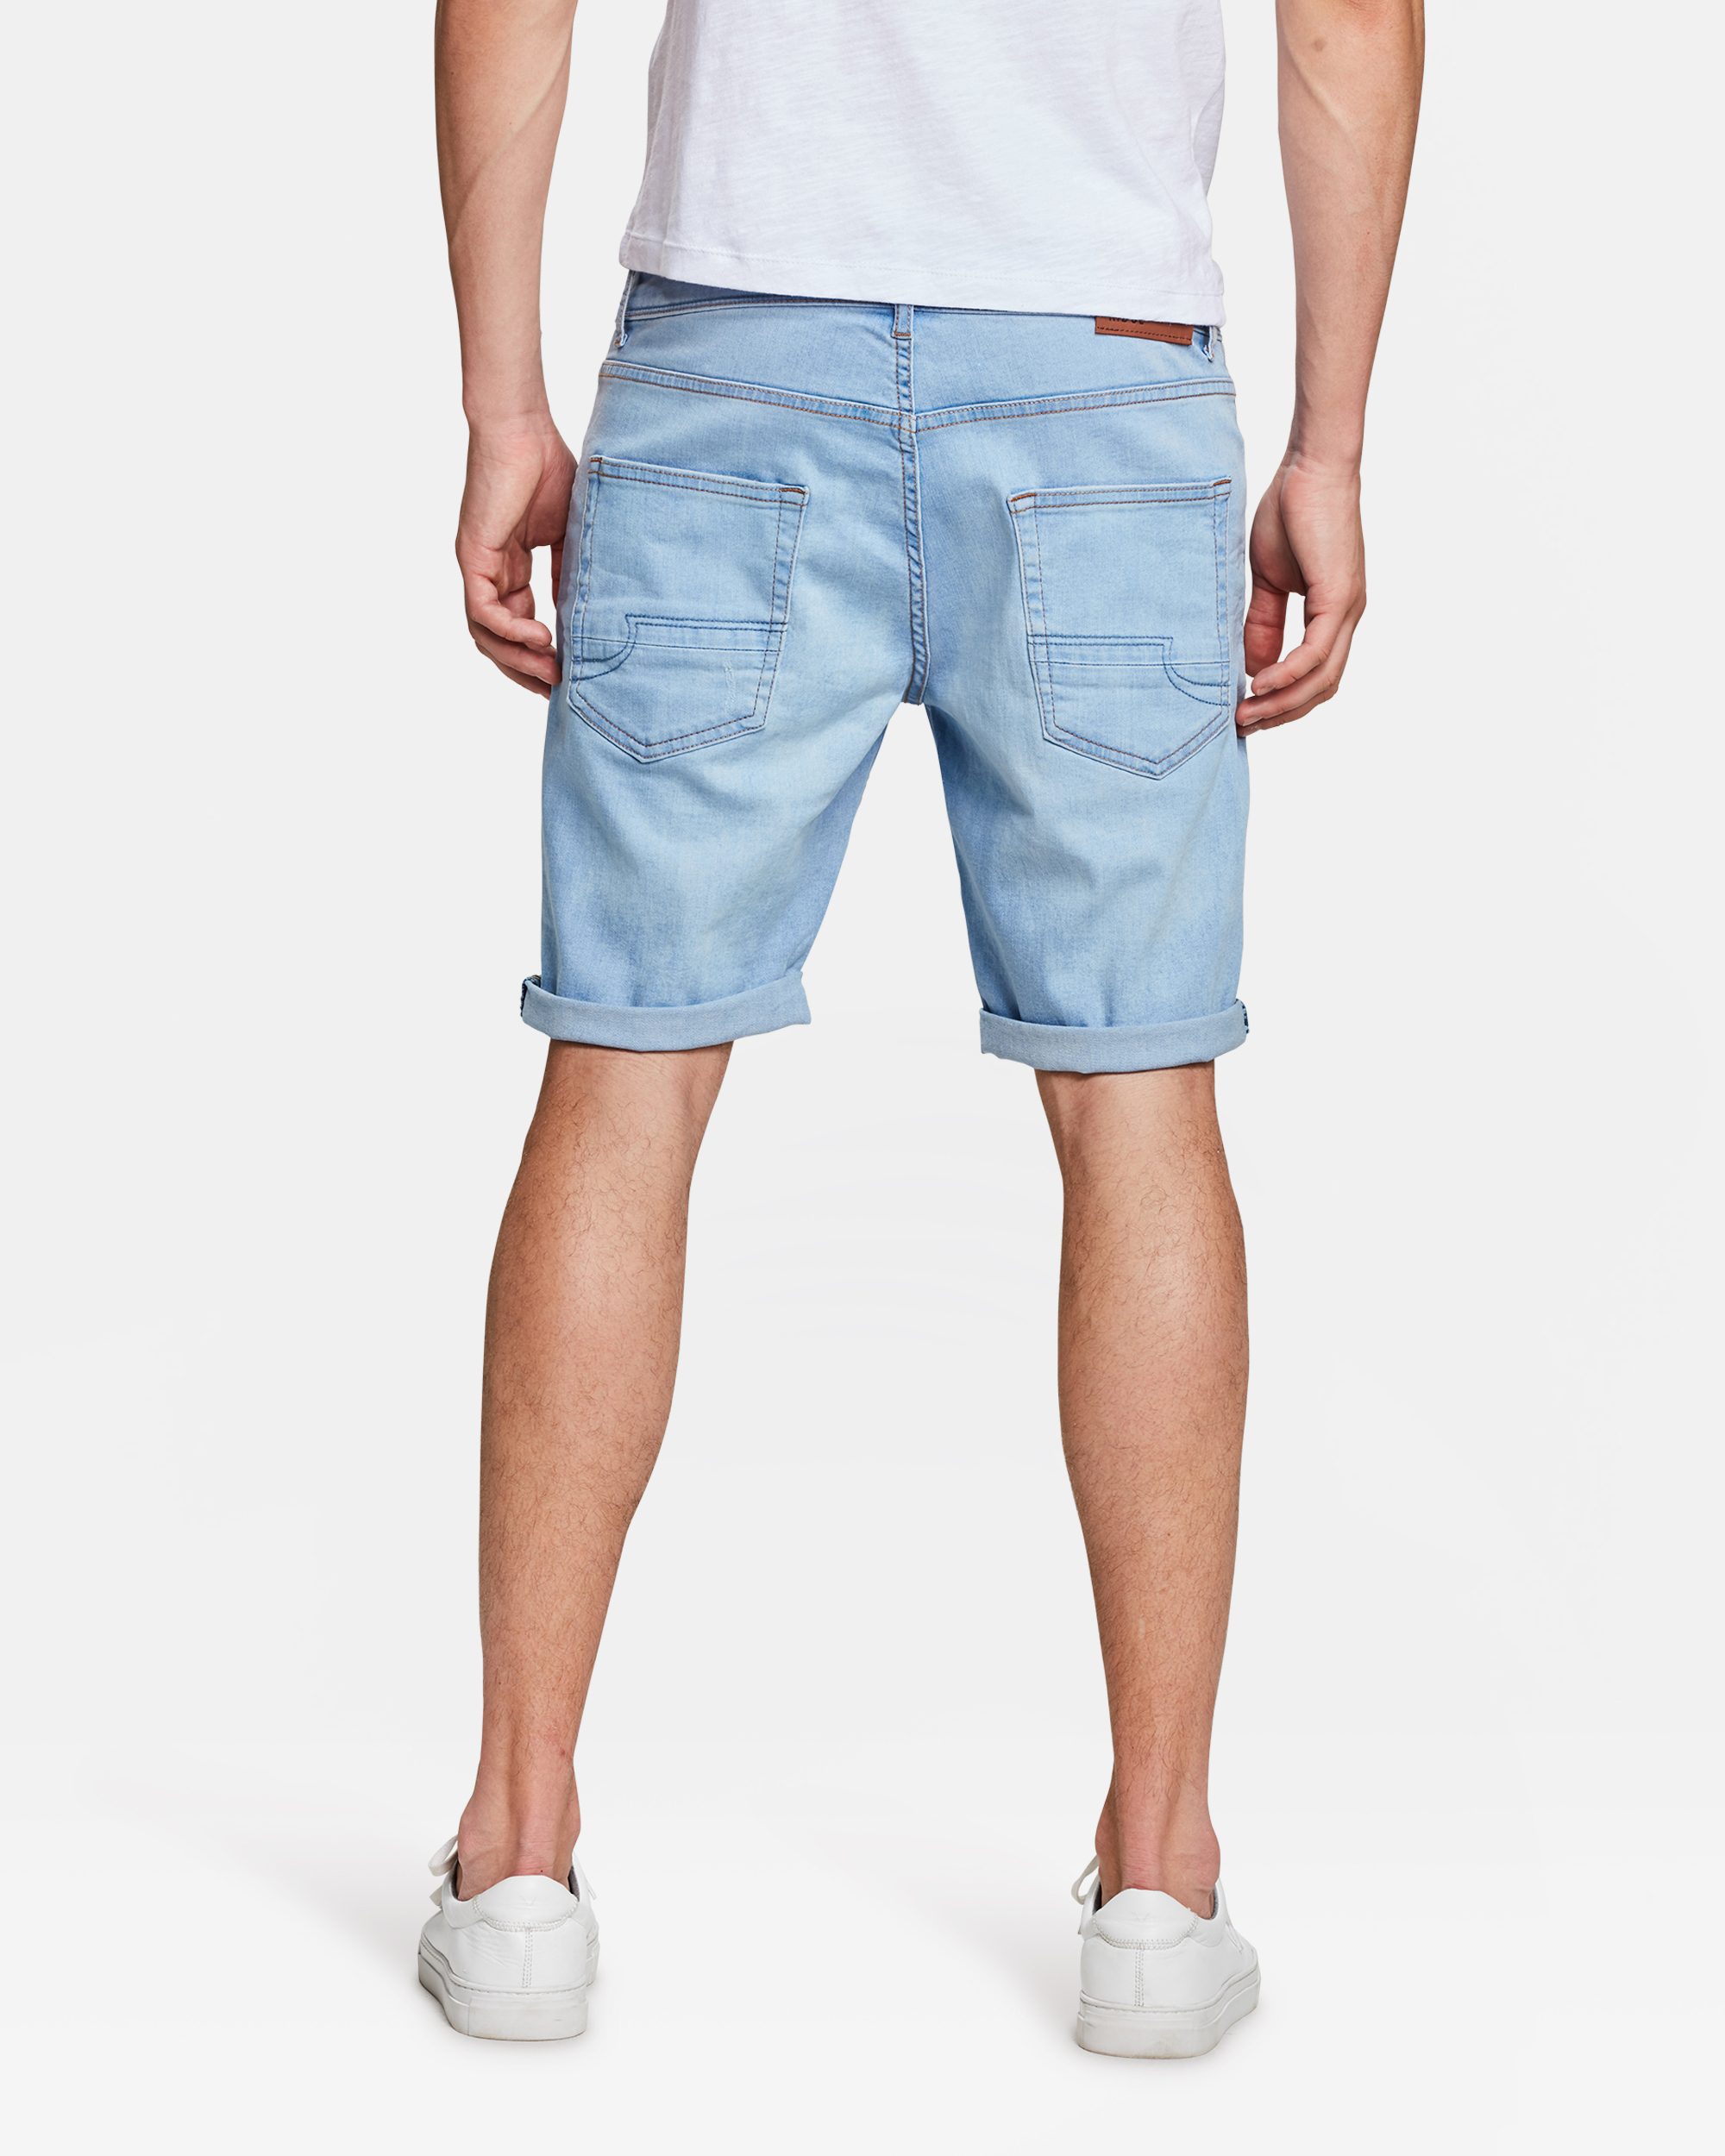 Mit Rip Fashion amp;repair We Herren Jeans Shorts Details85780071 qMLSzVUpG